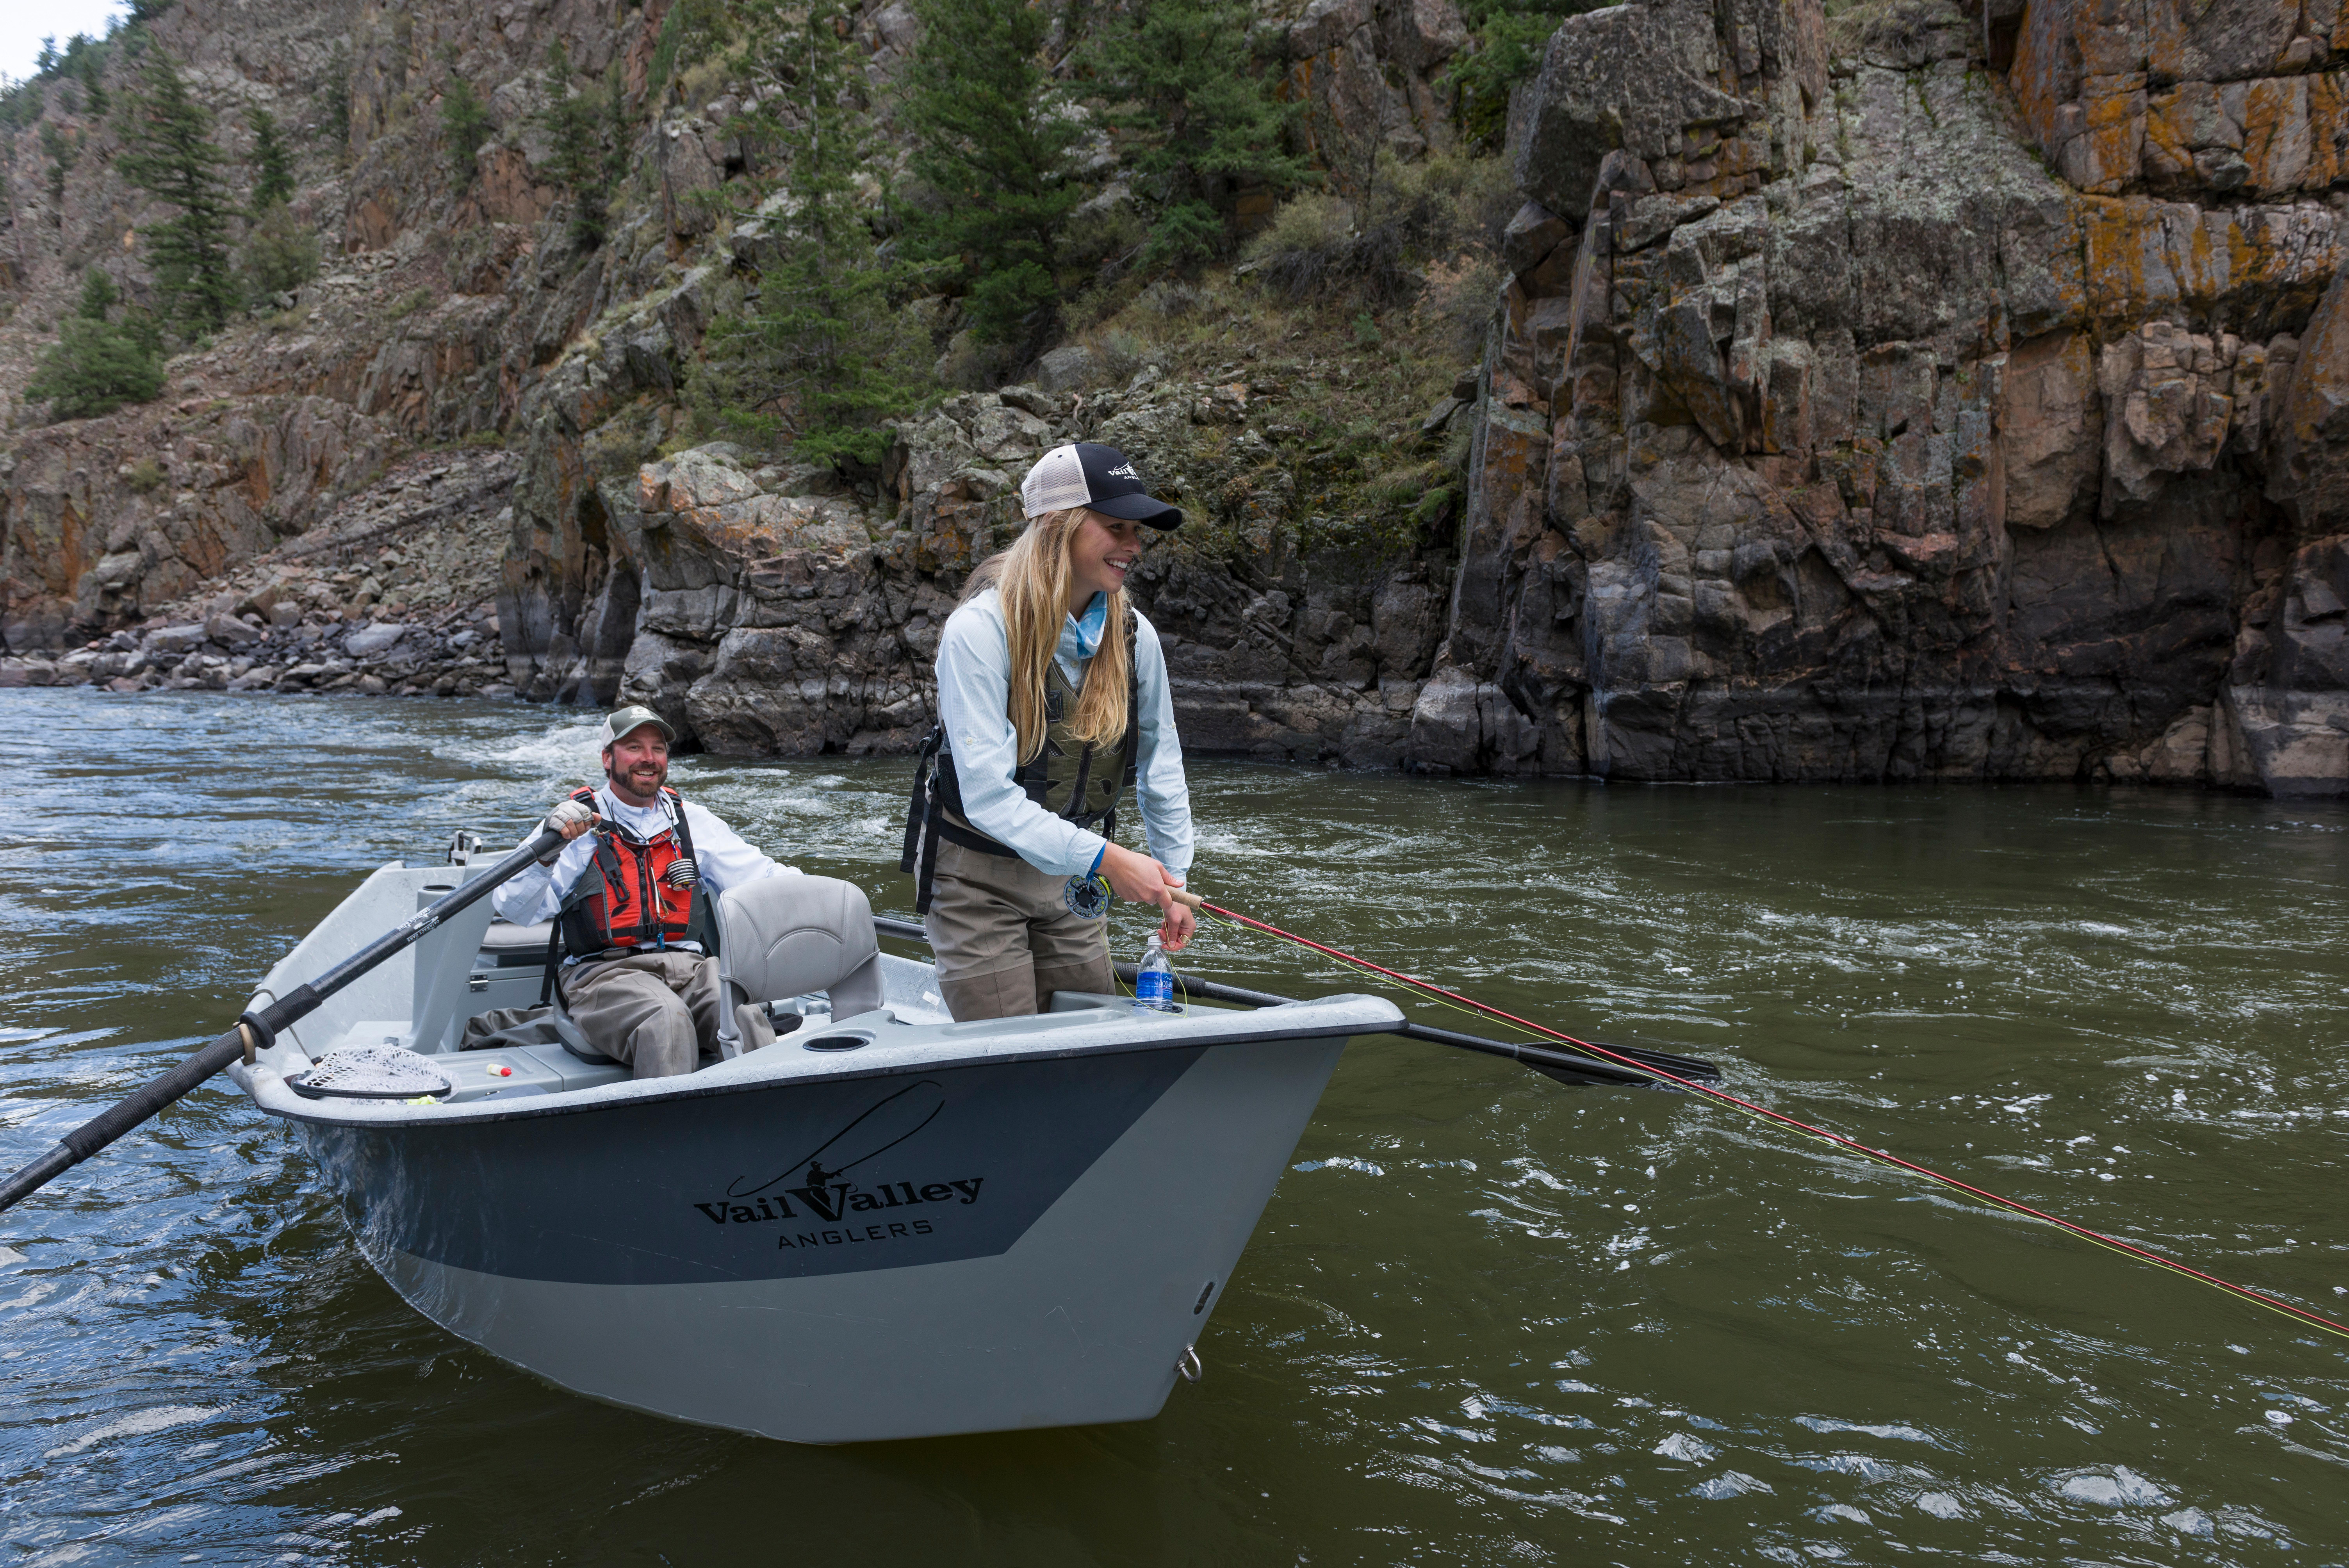 Vail Valley Anglers: Half Day Float